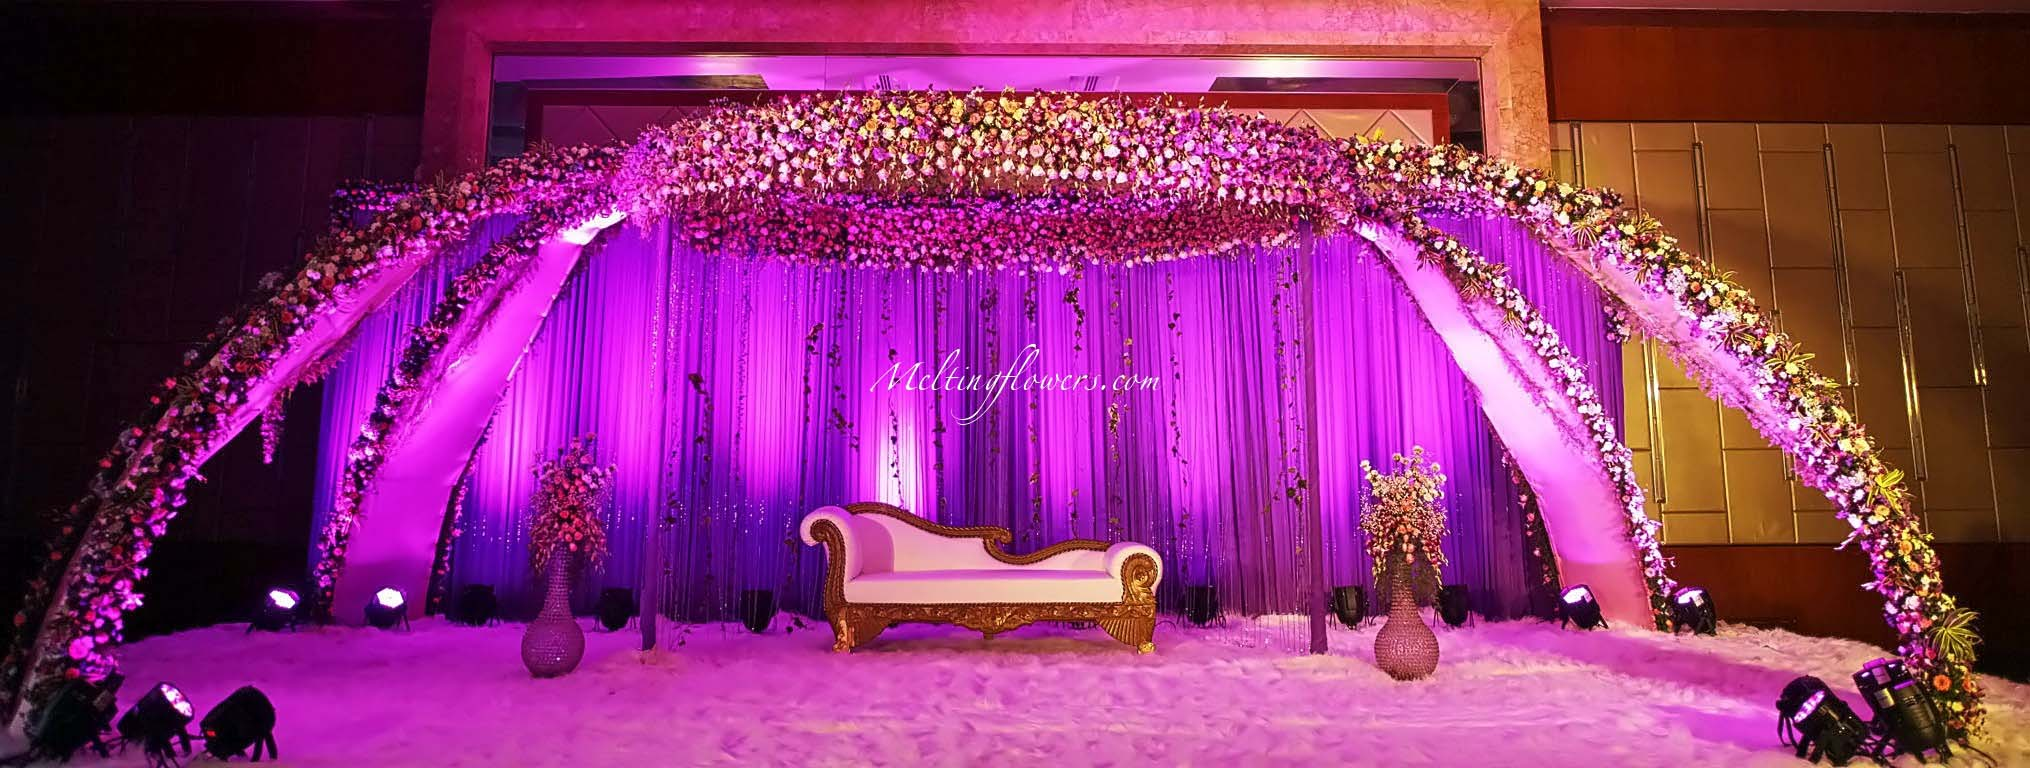 Wedding backdrops backdrop decorations melting flowers for Decoration or